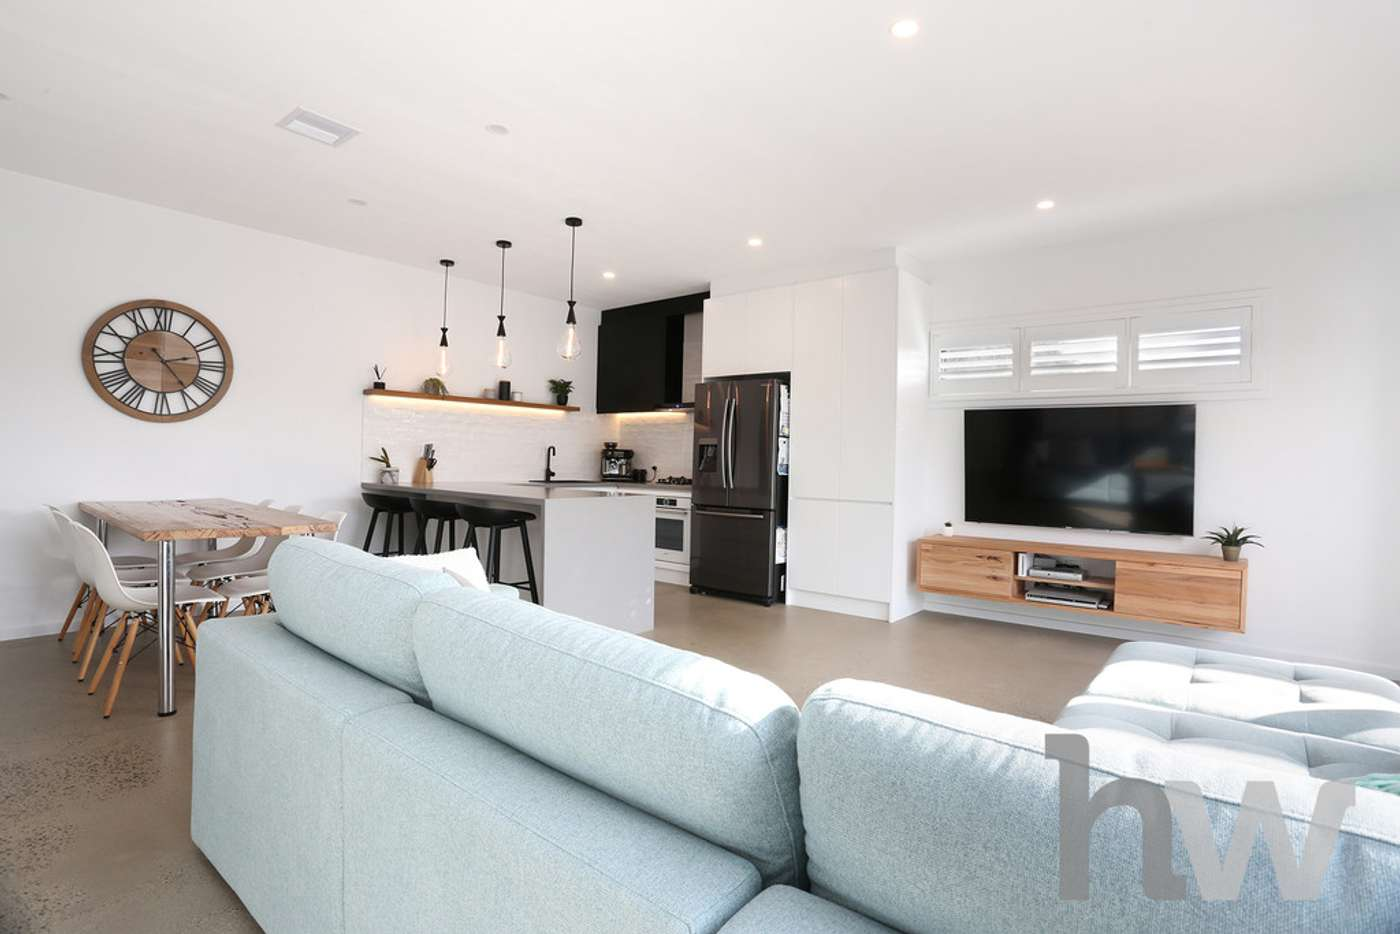 Fifth view of Homely townhouse listing, 2/23 Glover Street, Newcomb VIC 3219